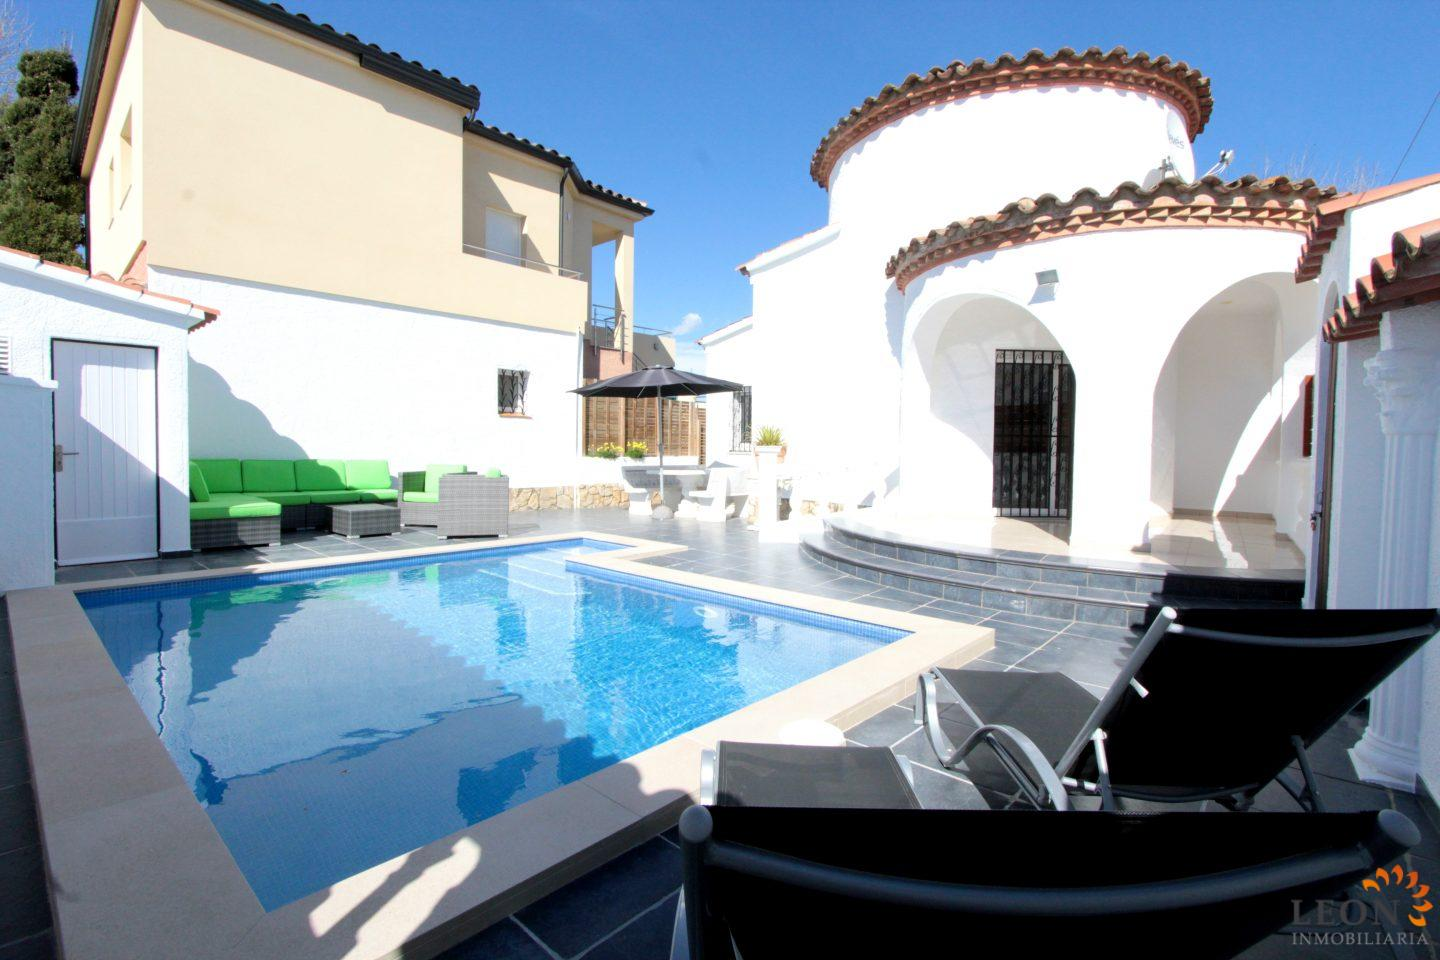 Elegant Modern Villa For 4 Peoples In Empuriabrava With Beautiful Terrace And  Private Pool For Rent In